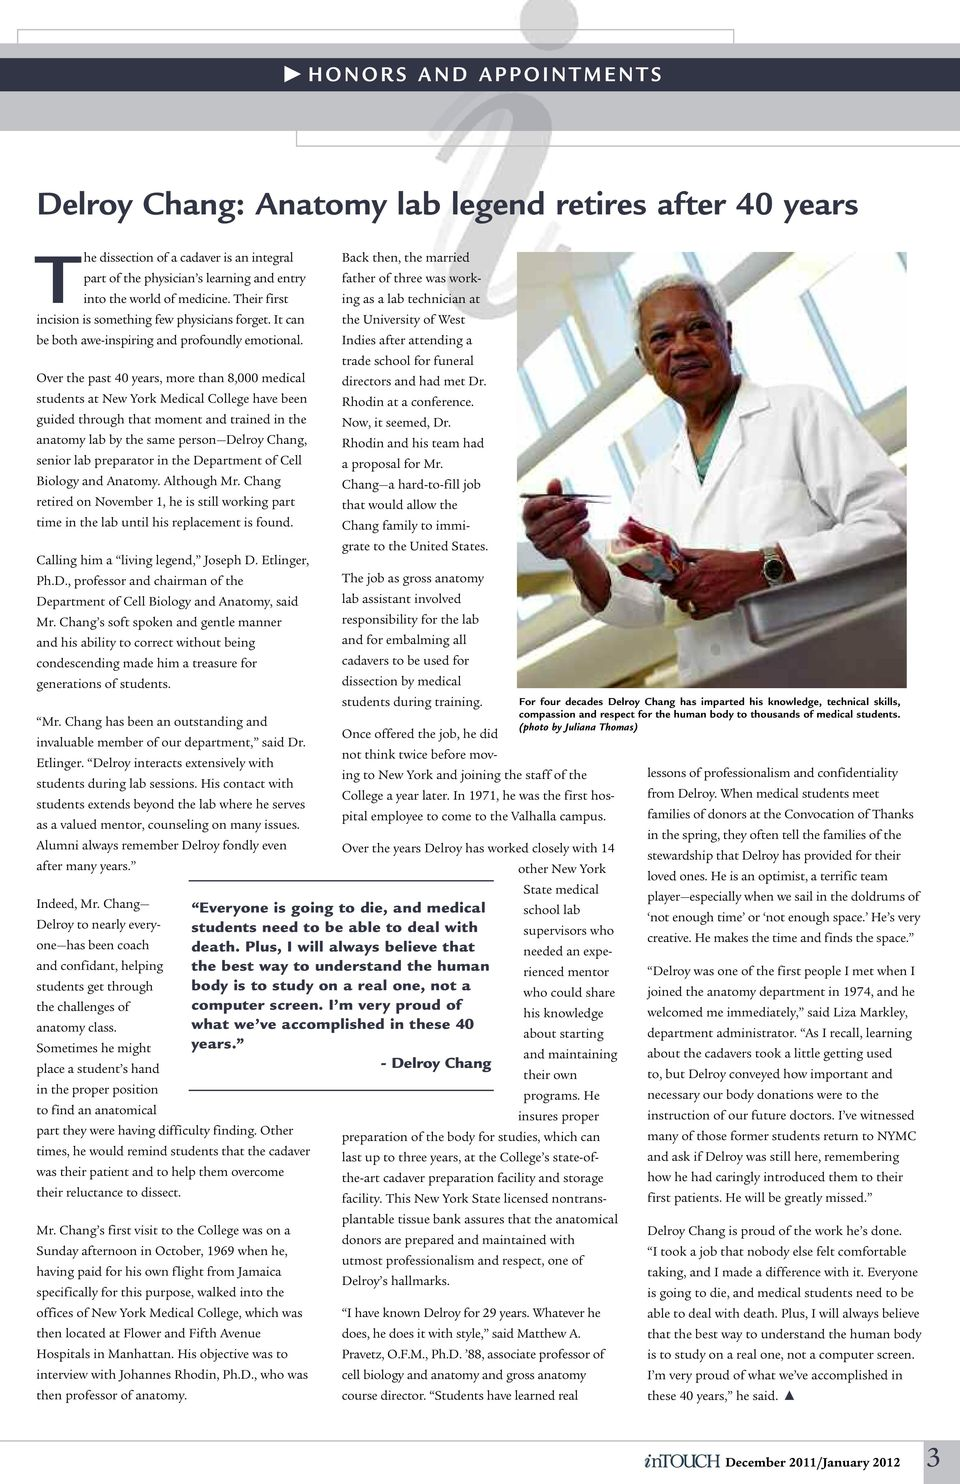 the University of West Indies after attending a trade school for funeral Over the past 40 years, more than 8,000 medical students at New York Medical College have been guided through that moment and